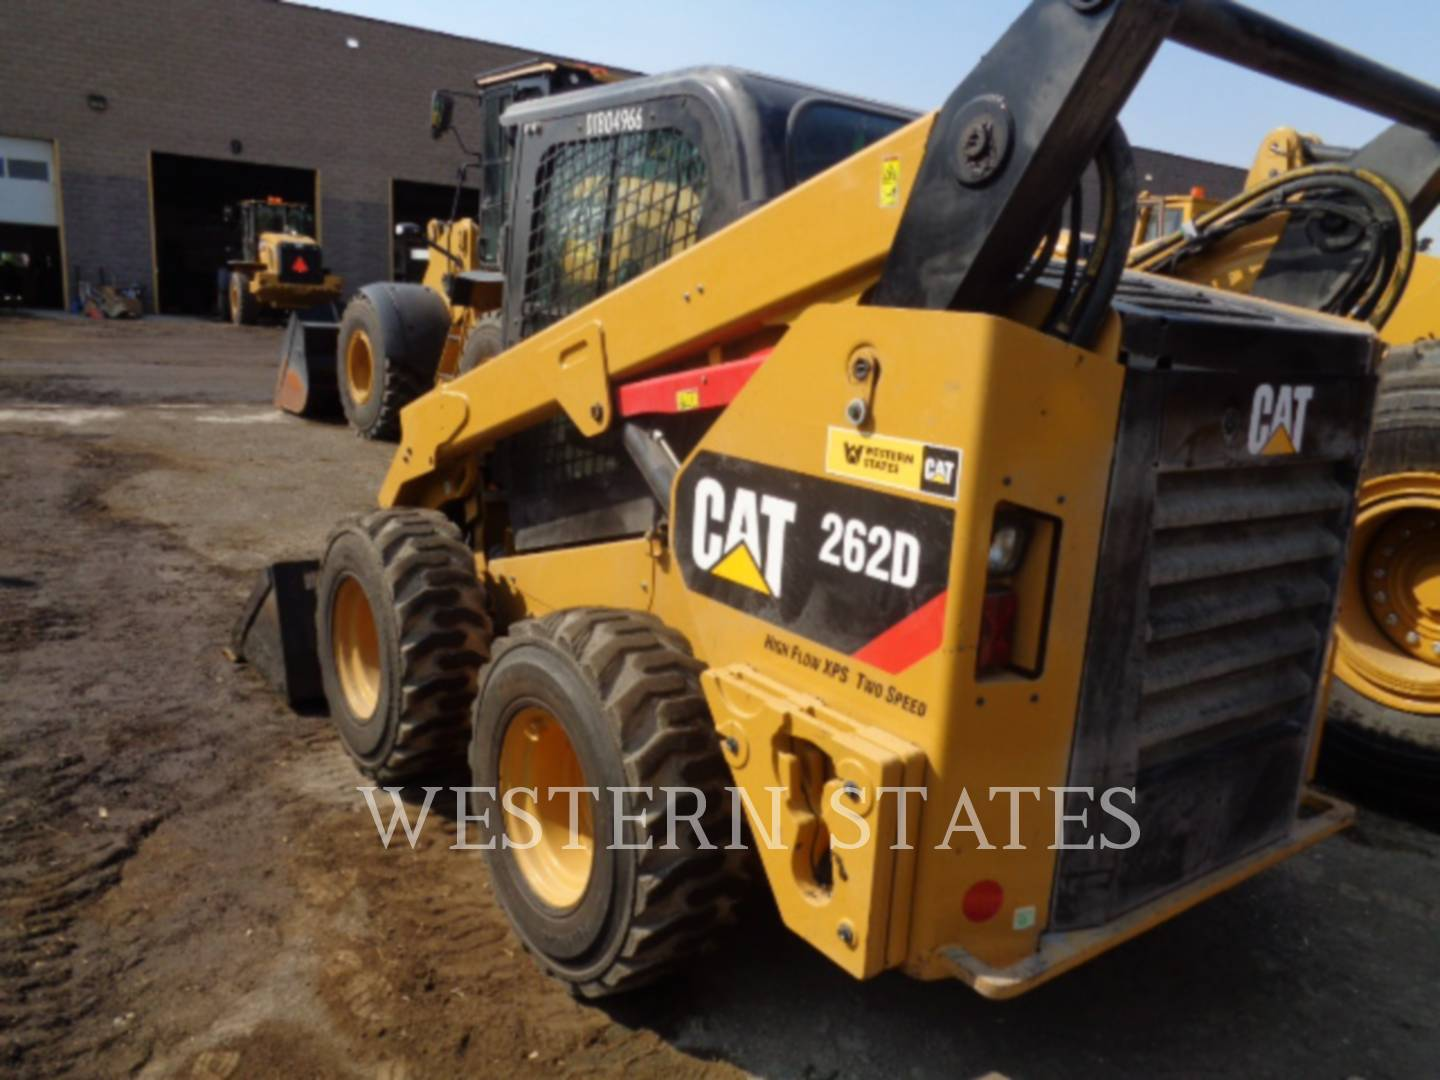 2016 CATERPILLAR 262D image3